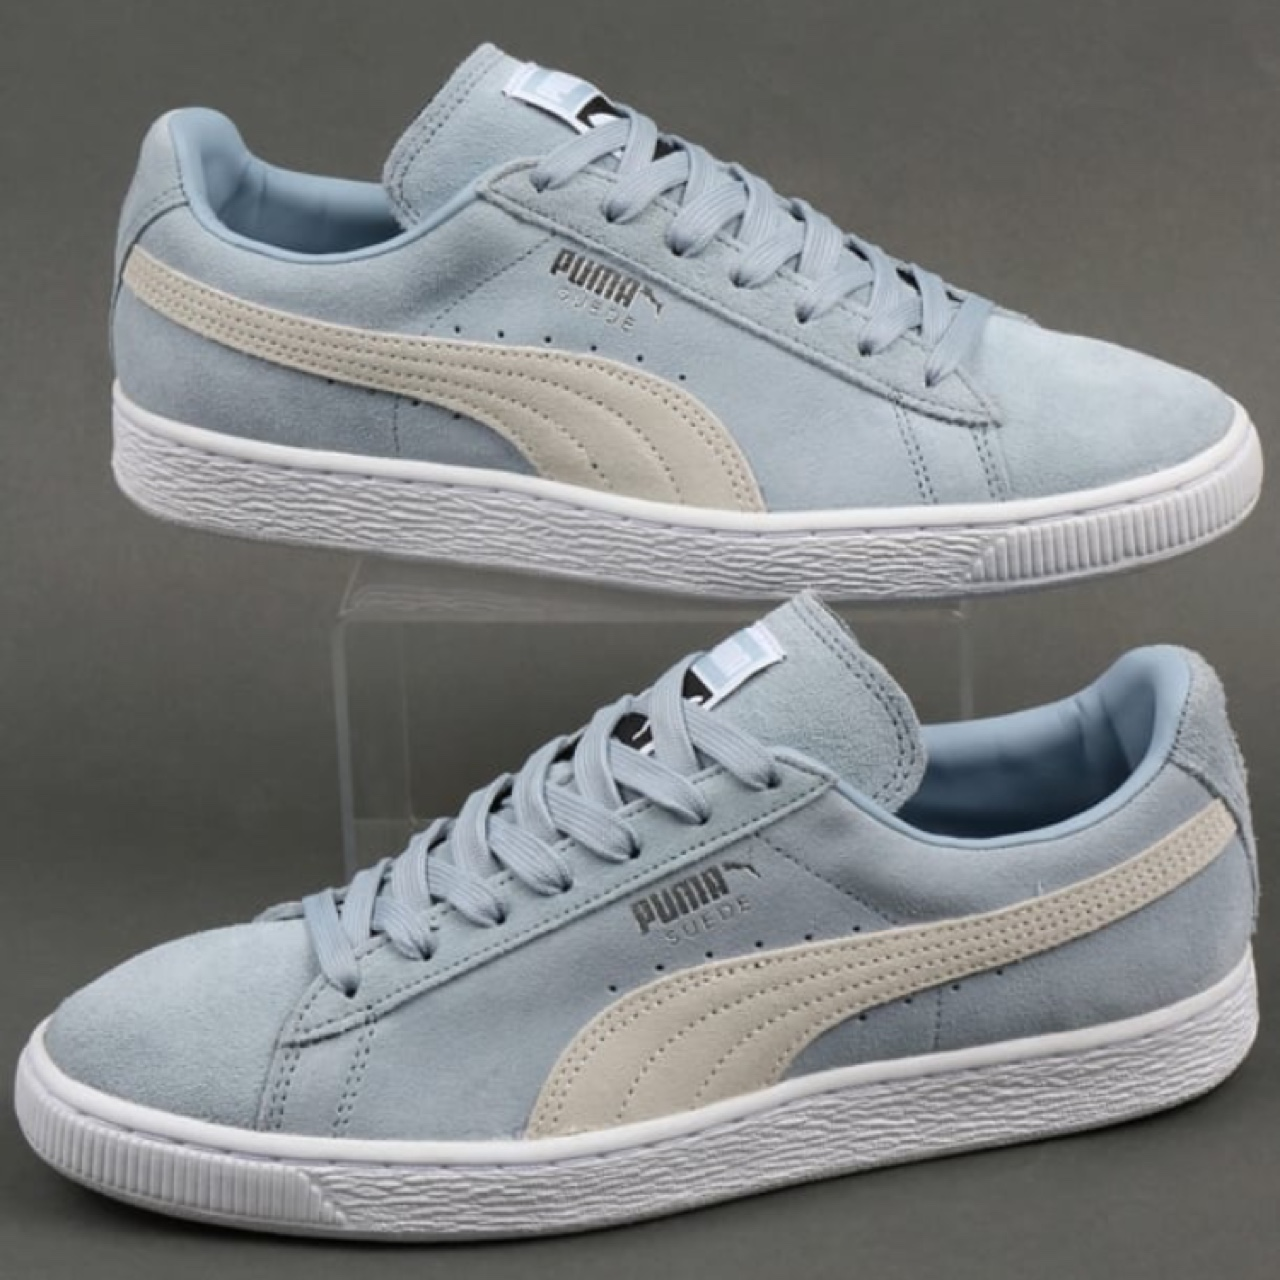 c56cbe9c5 REDUCED PRICE Puma Suede classic trainers